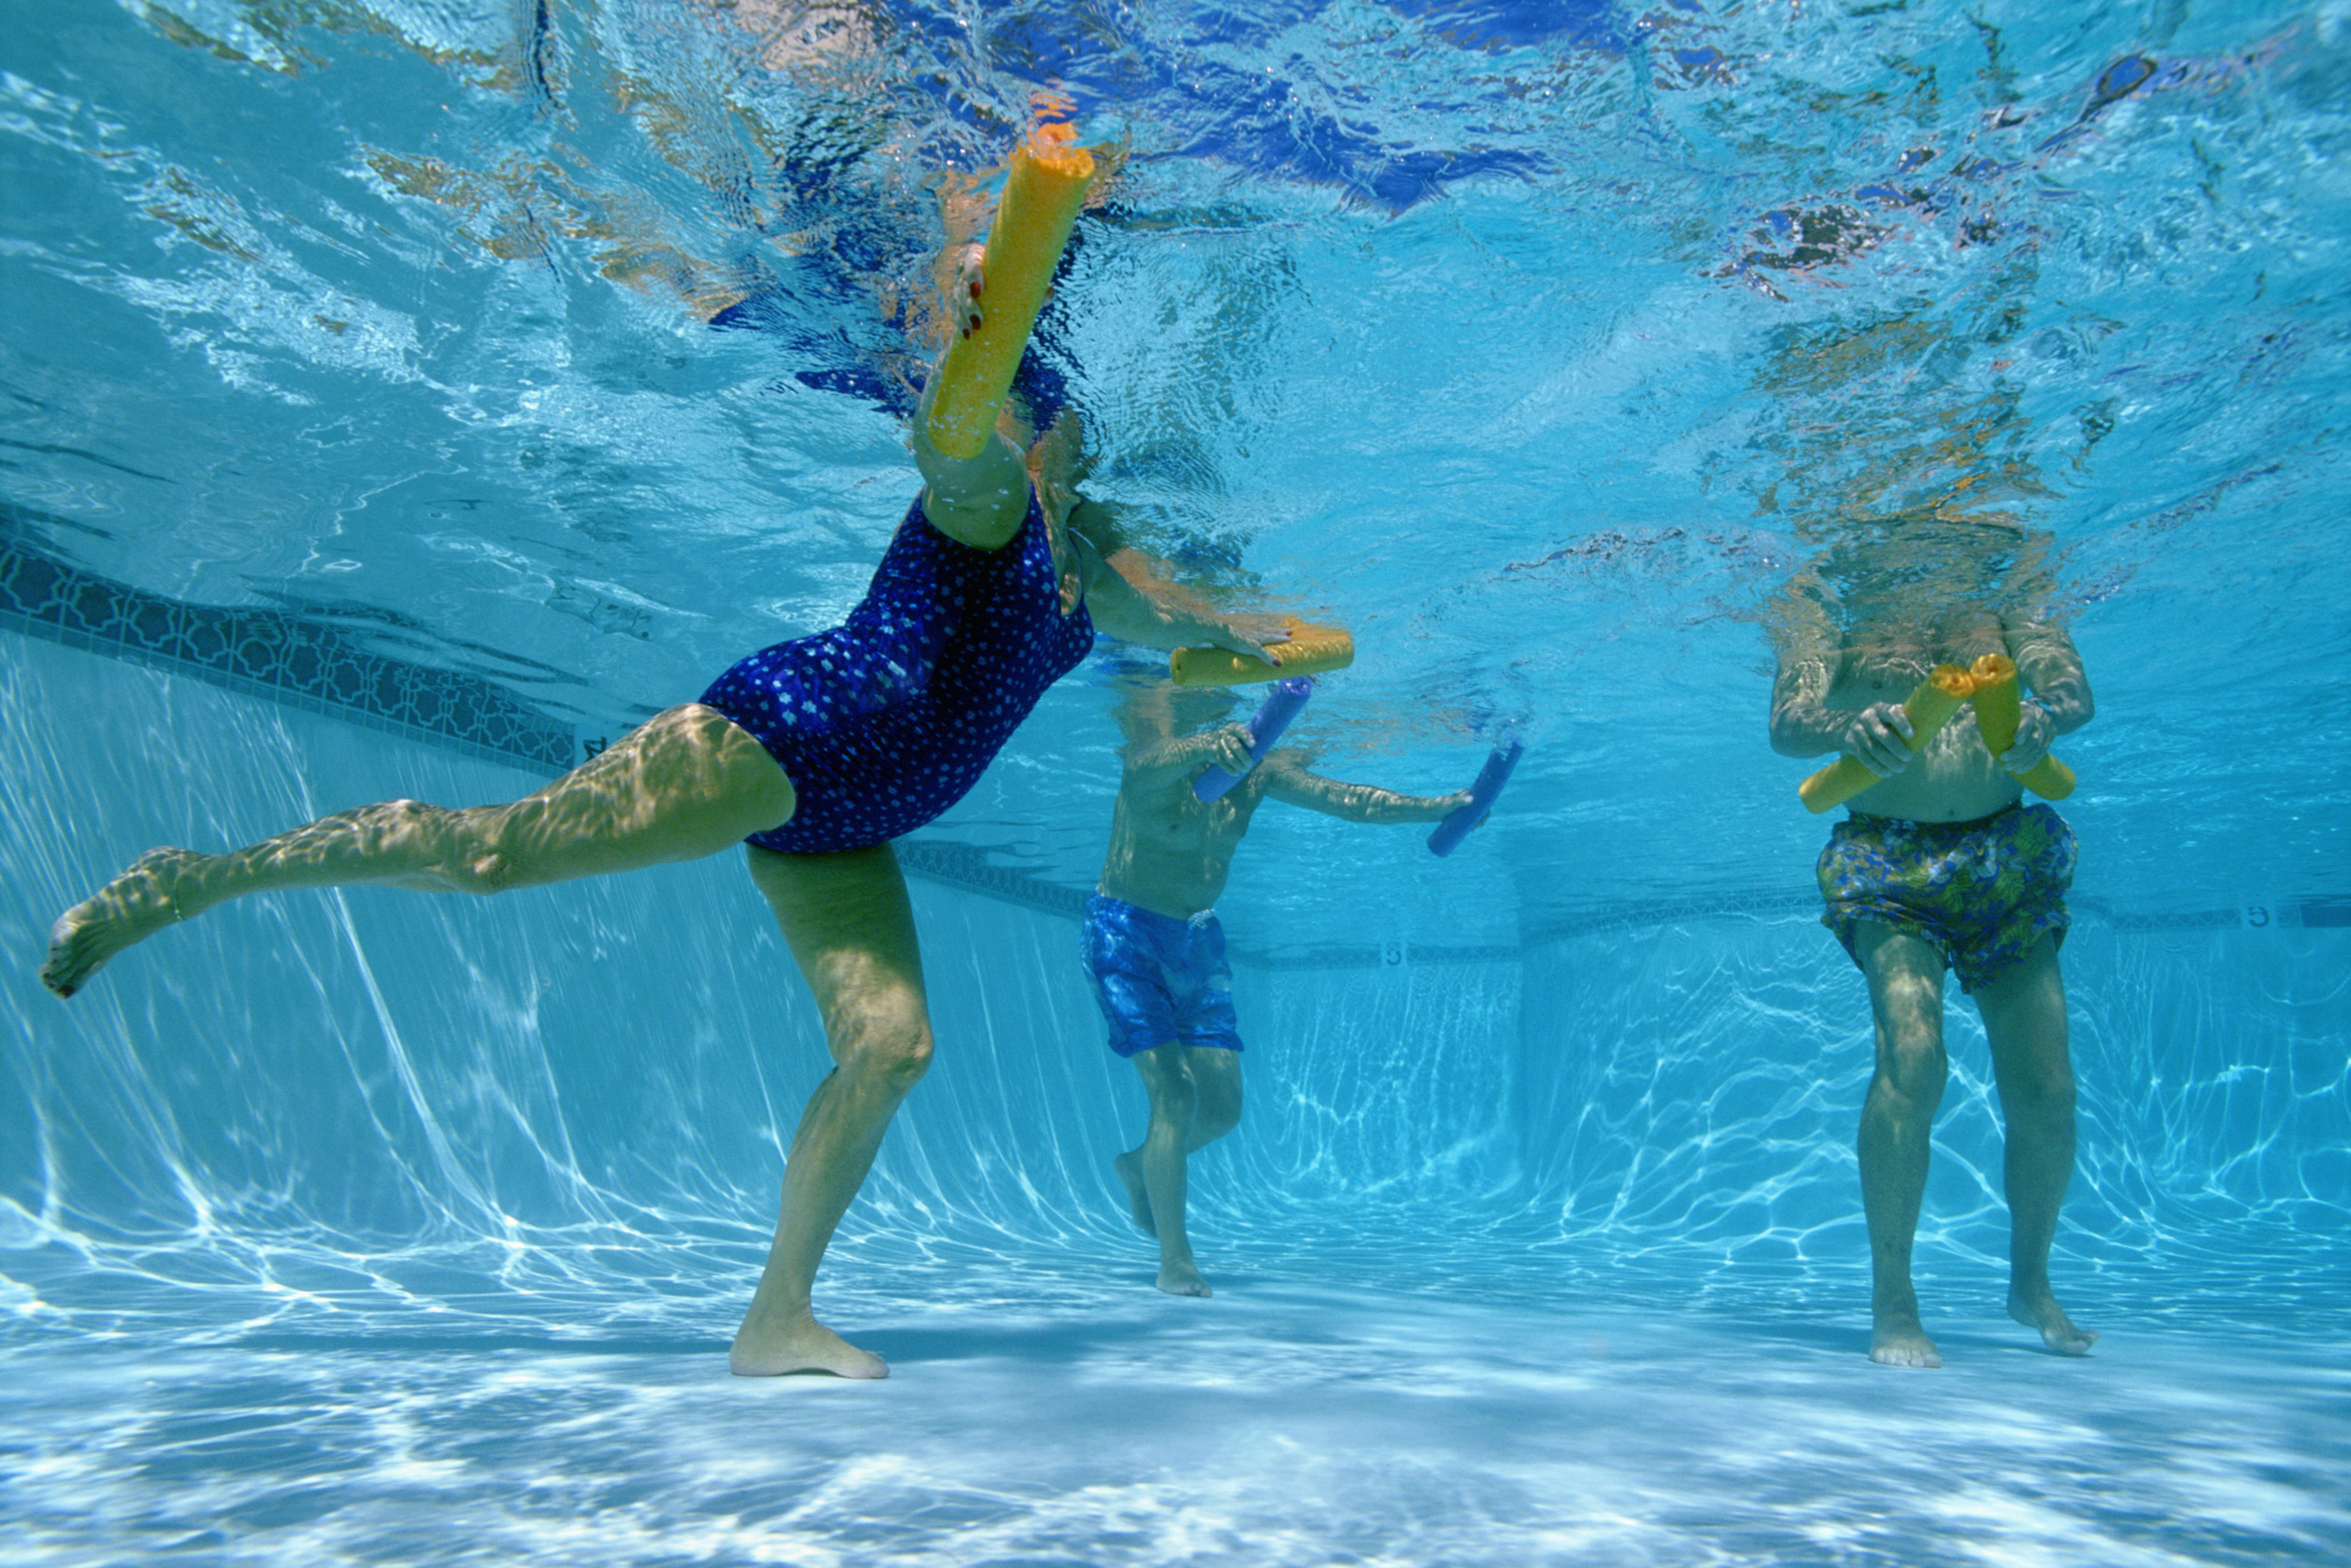 Water exercise can be good for your back.